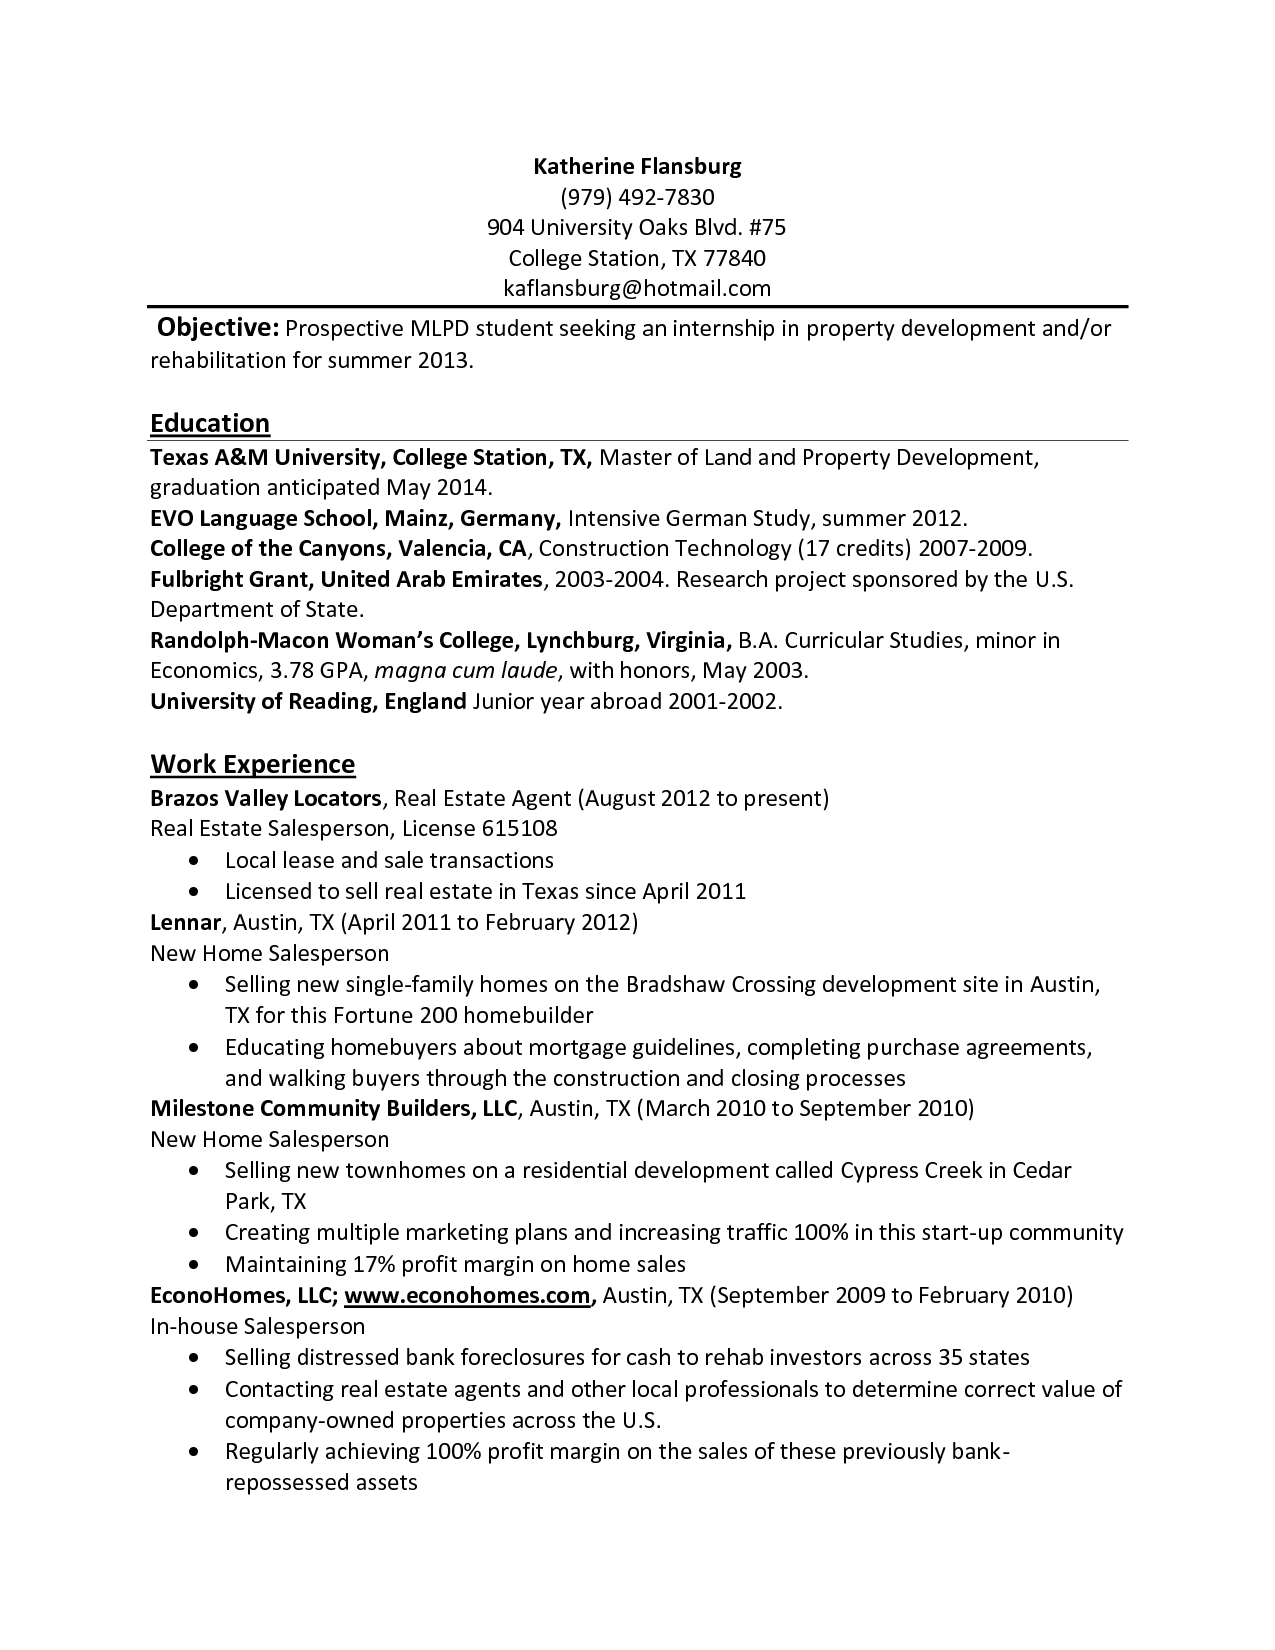 Undergraduate Student Resume Sample Resume For Undergraduate Psychology Students Guide To The